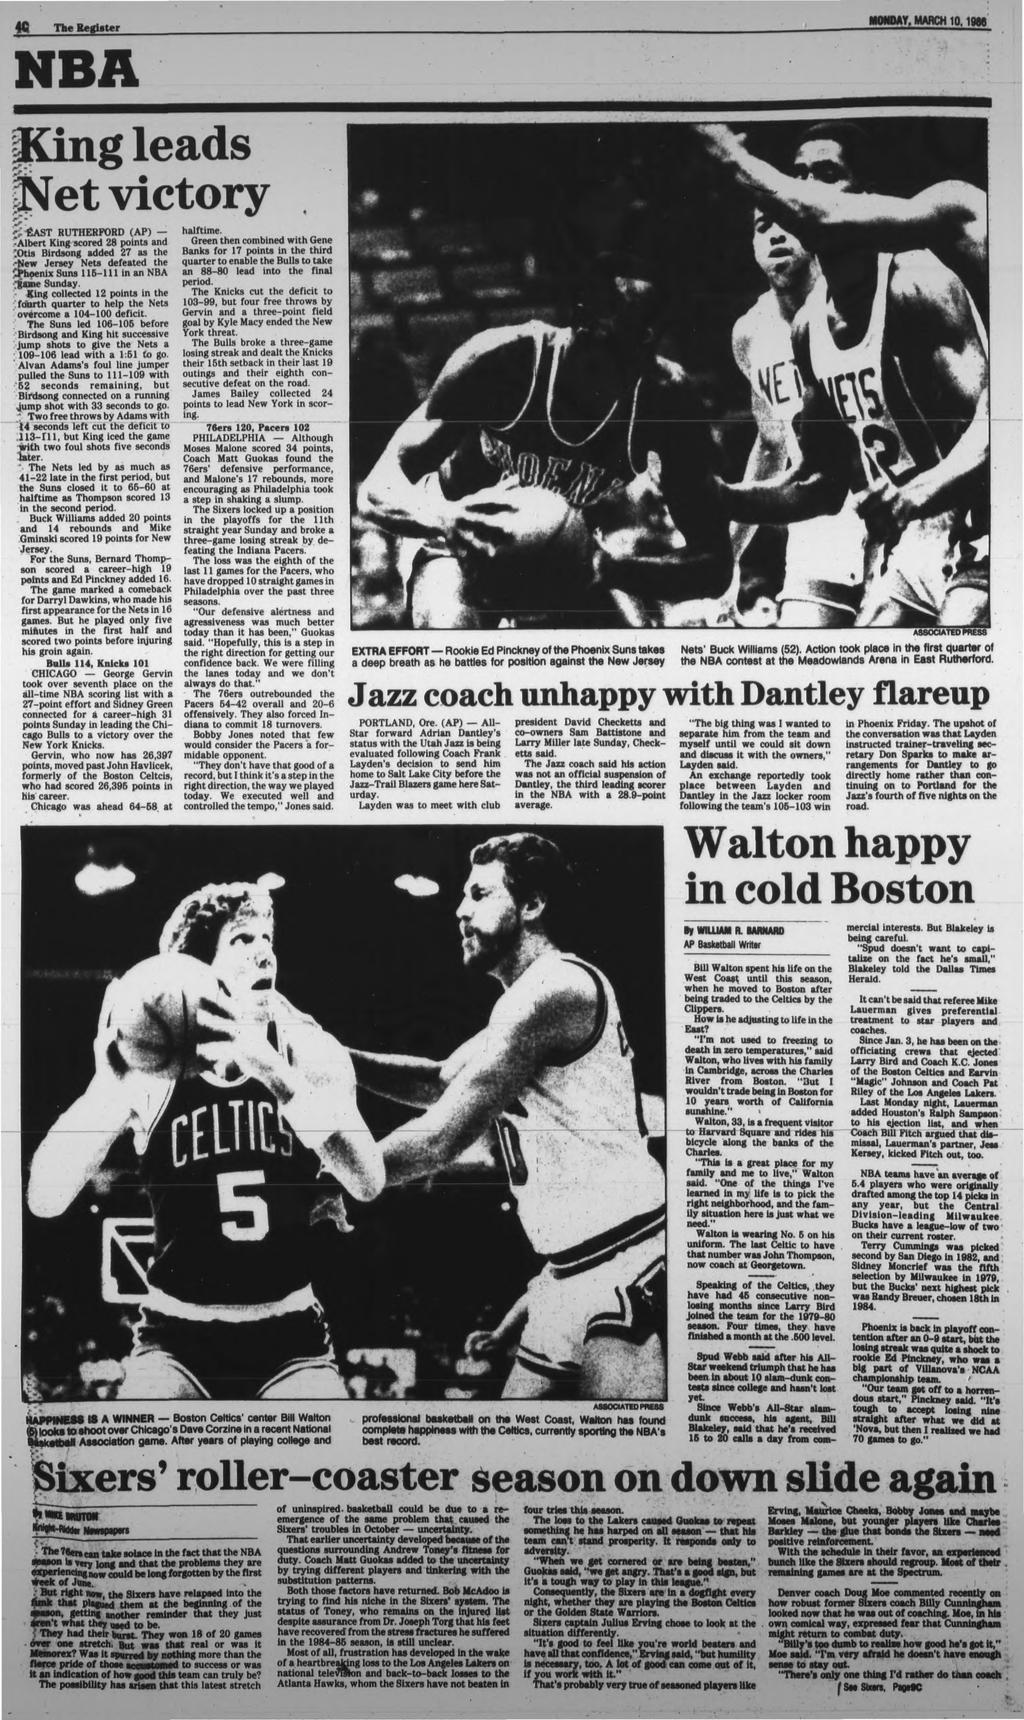 The Register ODAY. ARCH 0,986 NBA King leds jftet victory K tfast RUTHERFORD (AP) -Albert King scored 28 points nd ;Otis Birdsong dded 27 s the Jersey Nets defeted the enix Suns 5- in n NBA _ jsundy.